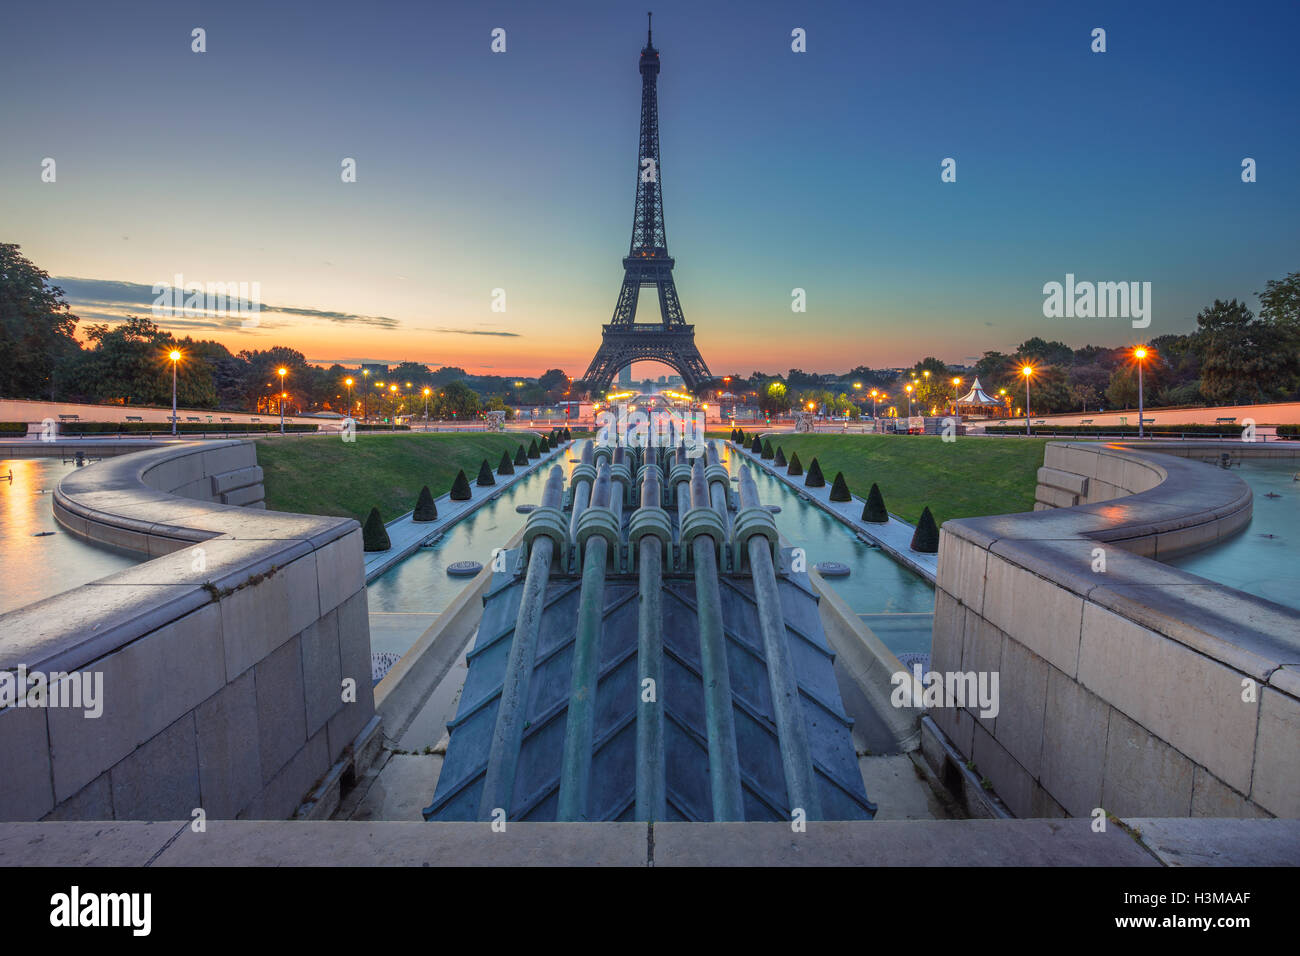 Paris, France. Image of Paris at sunrise with the Eiffel Tower. - Stock Image